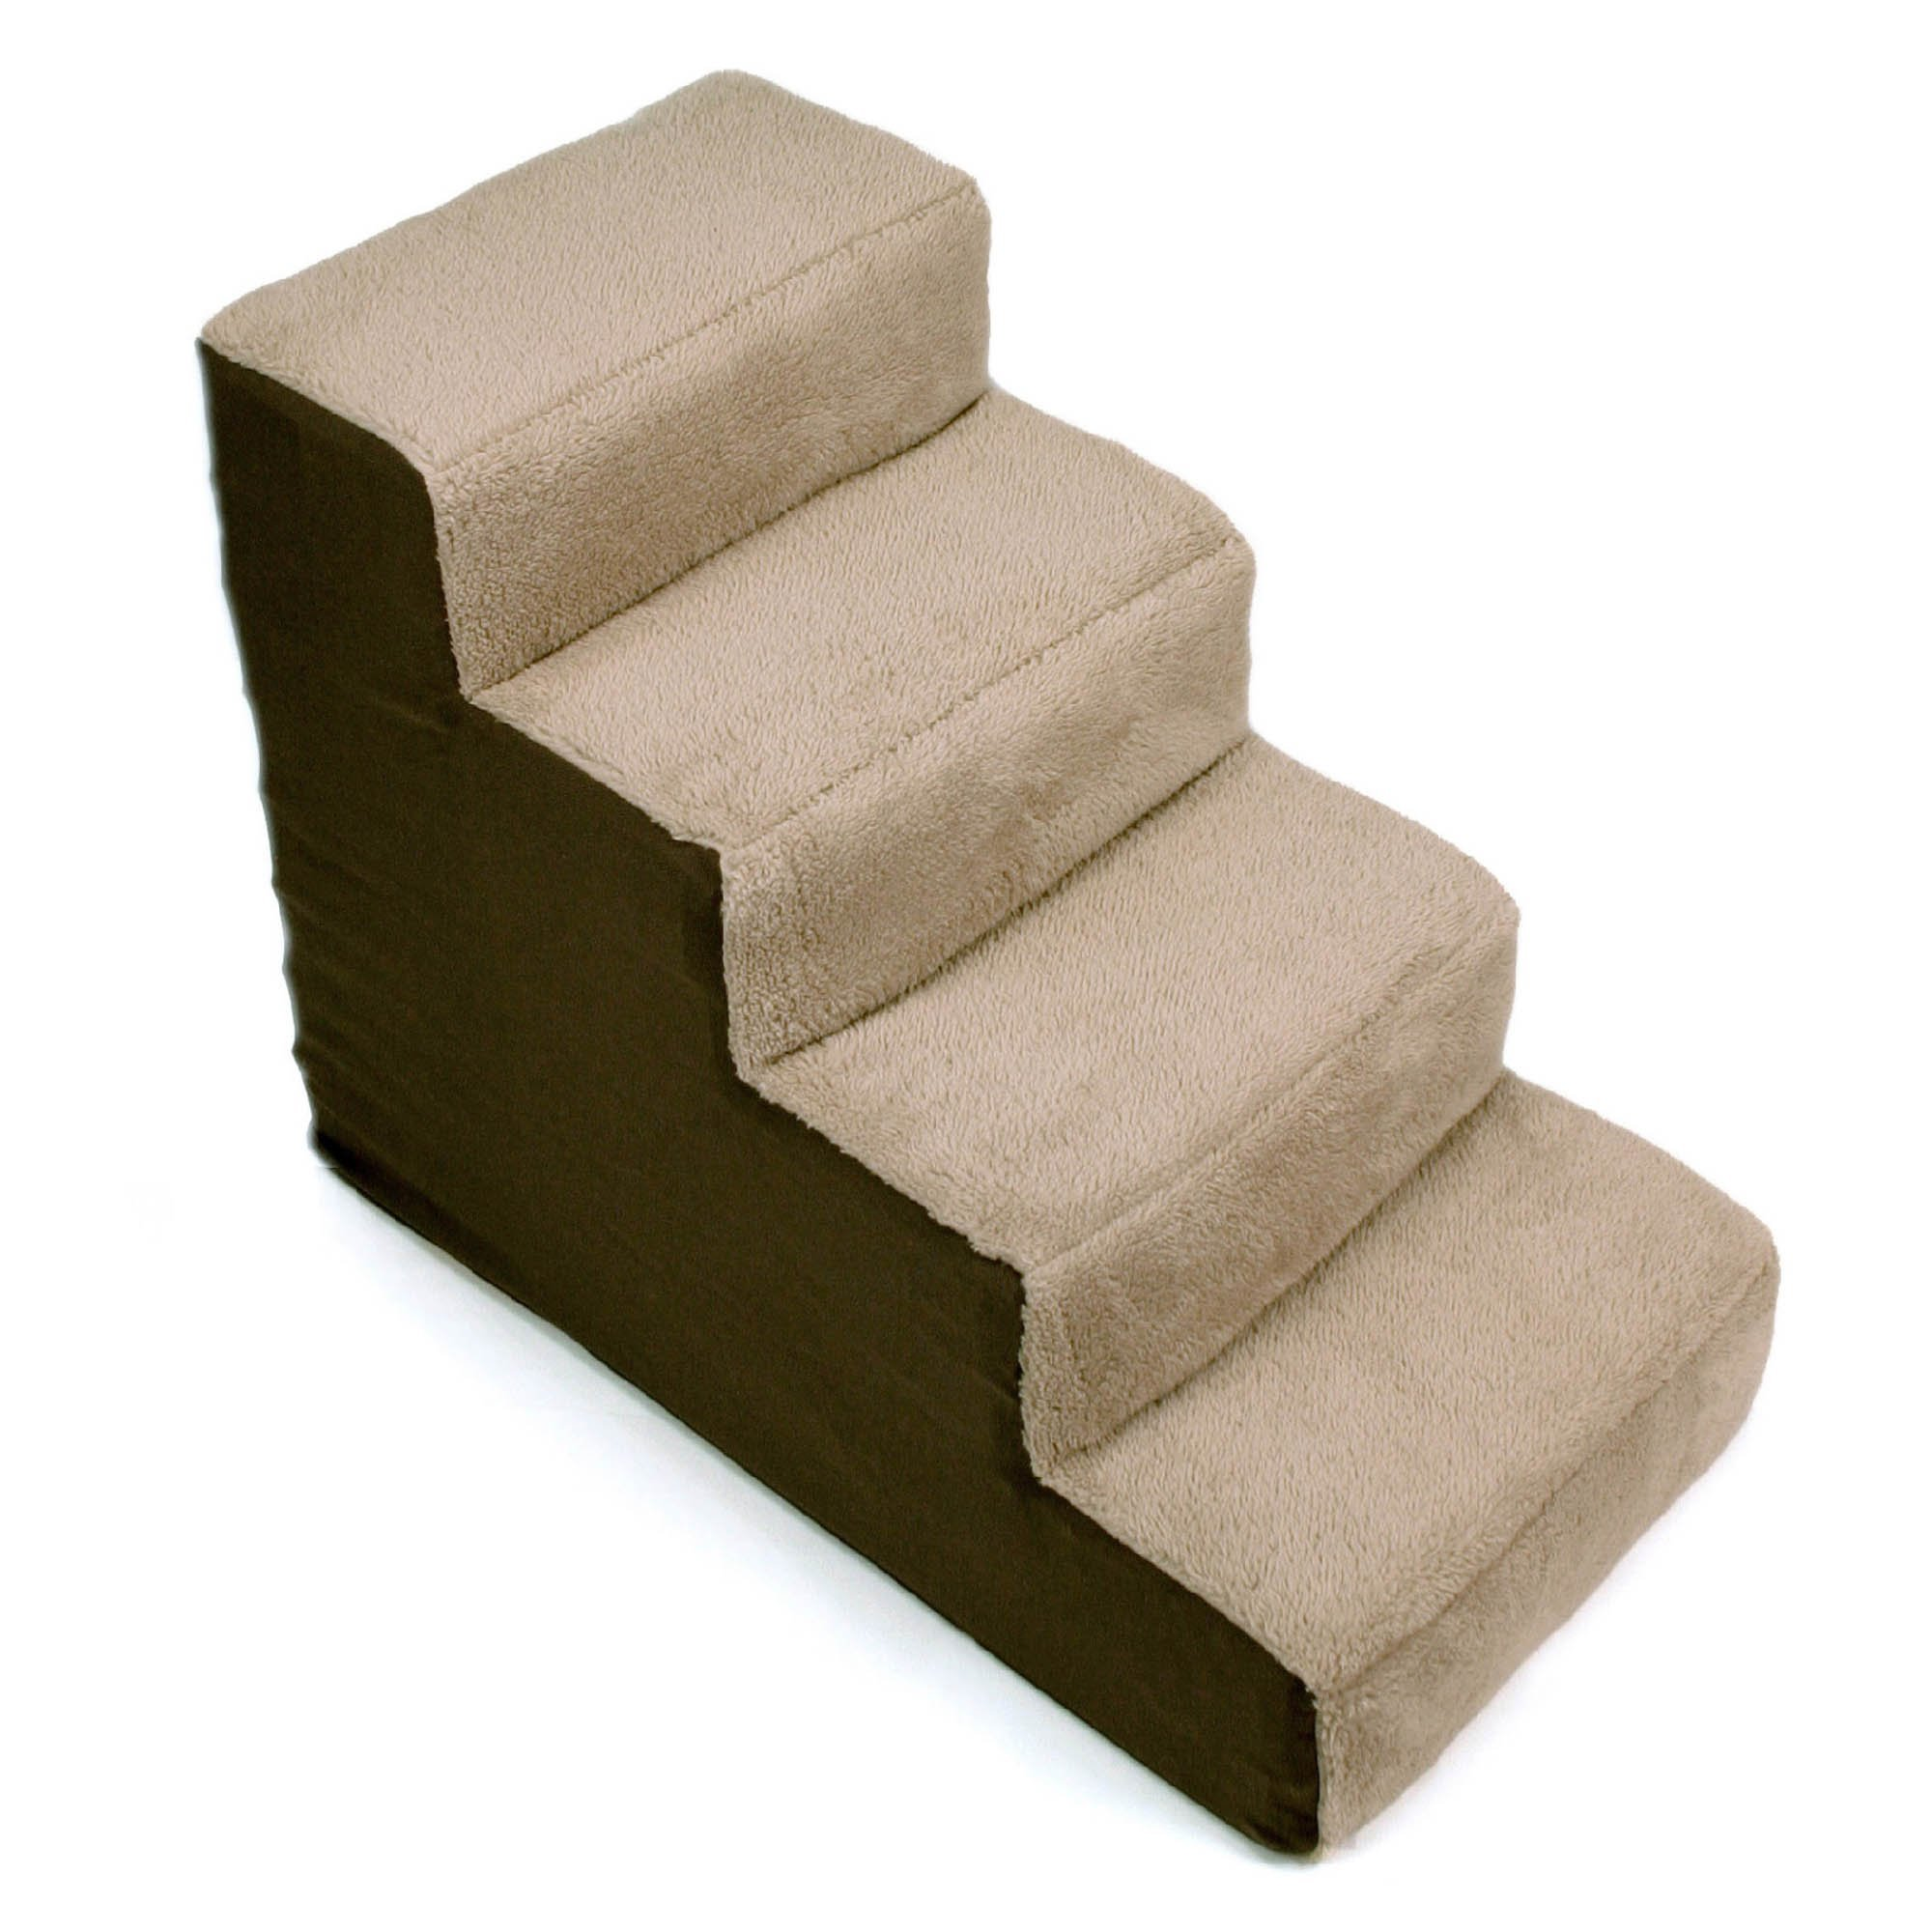 Up Pup 4-Step Dog Stairs, 28 IN, Brown/Tan